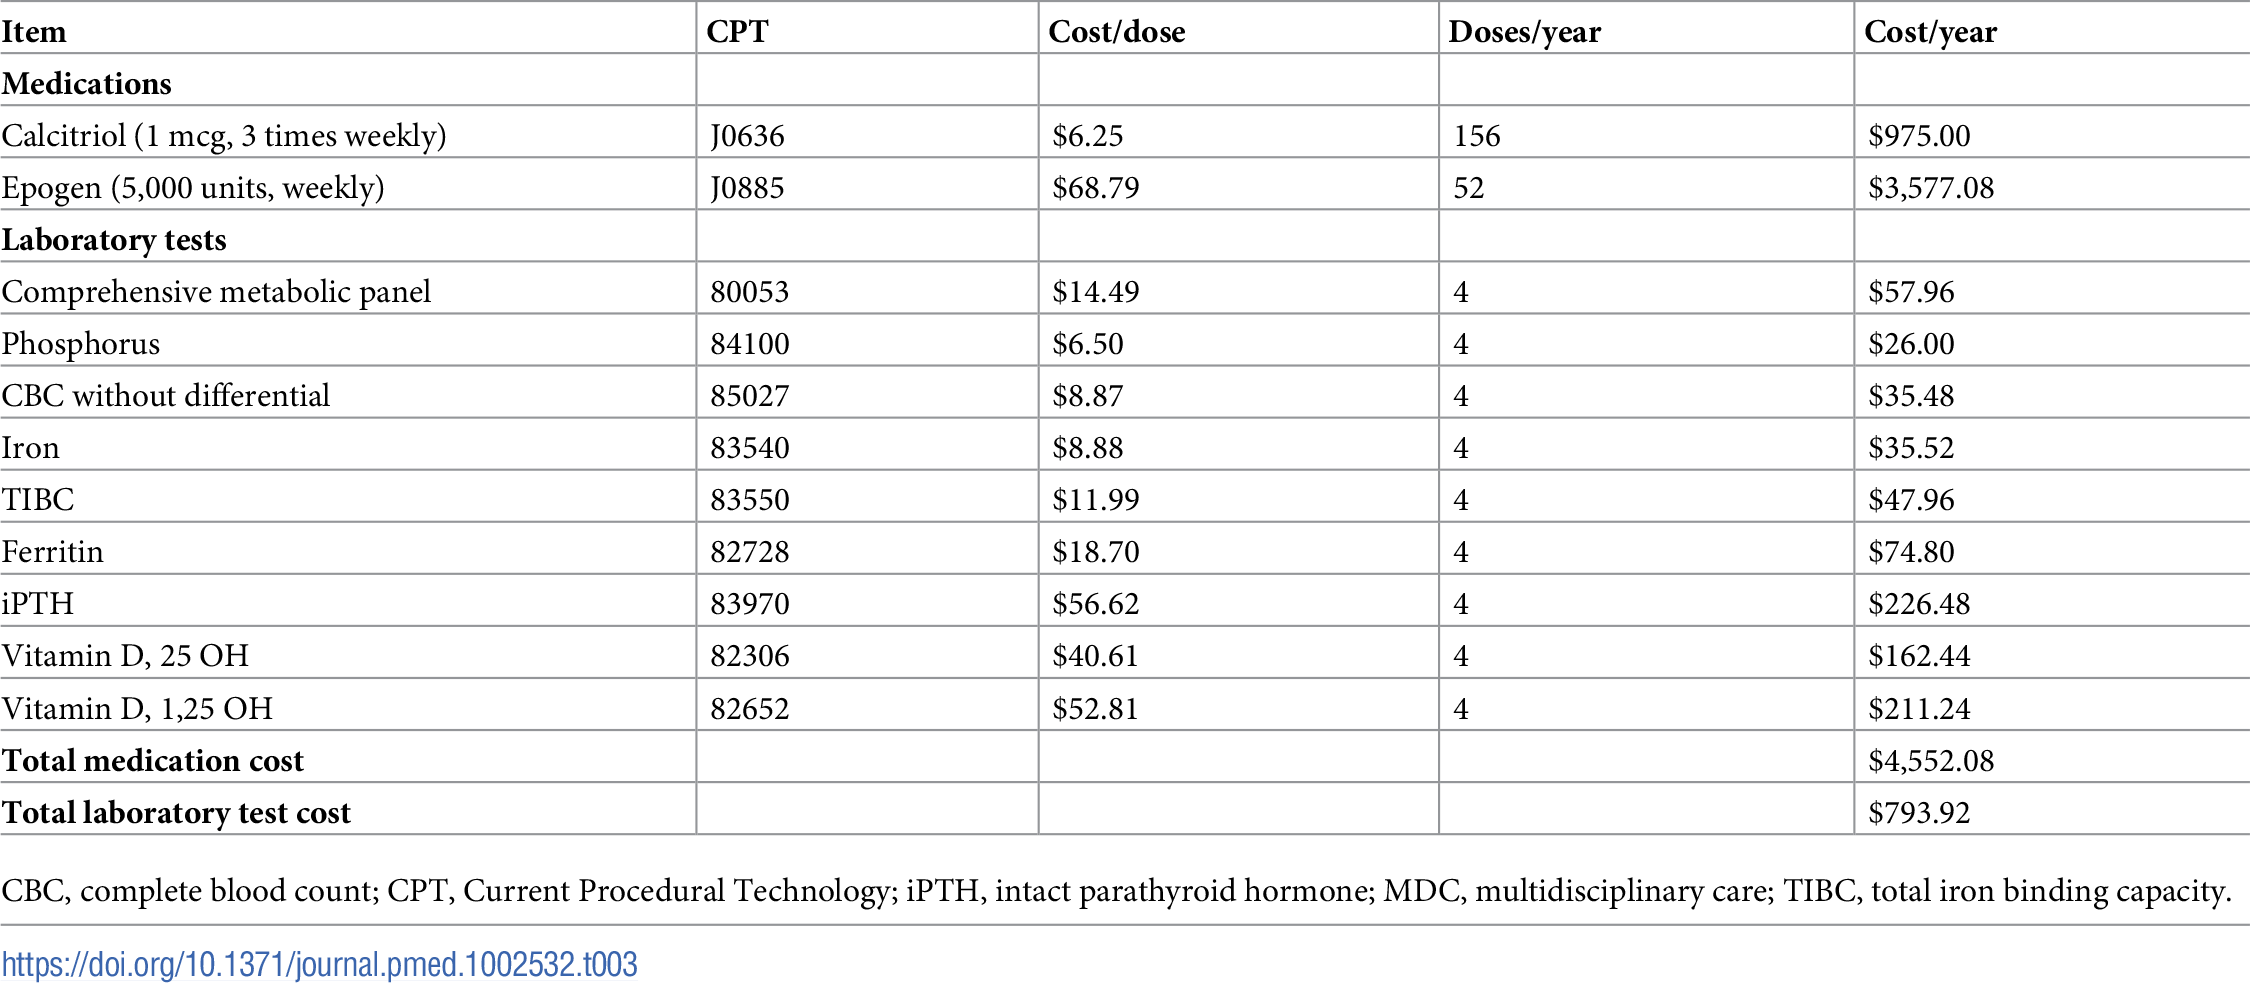 Medications and laboratory tests increased by MDC in the base case.